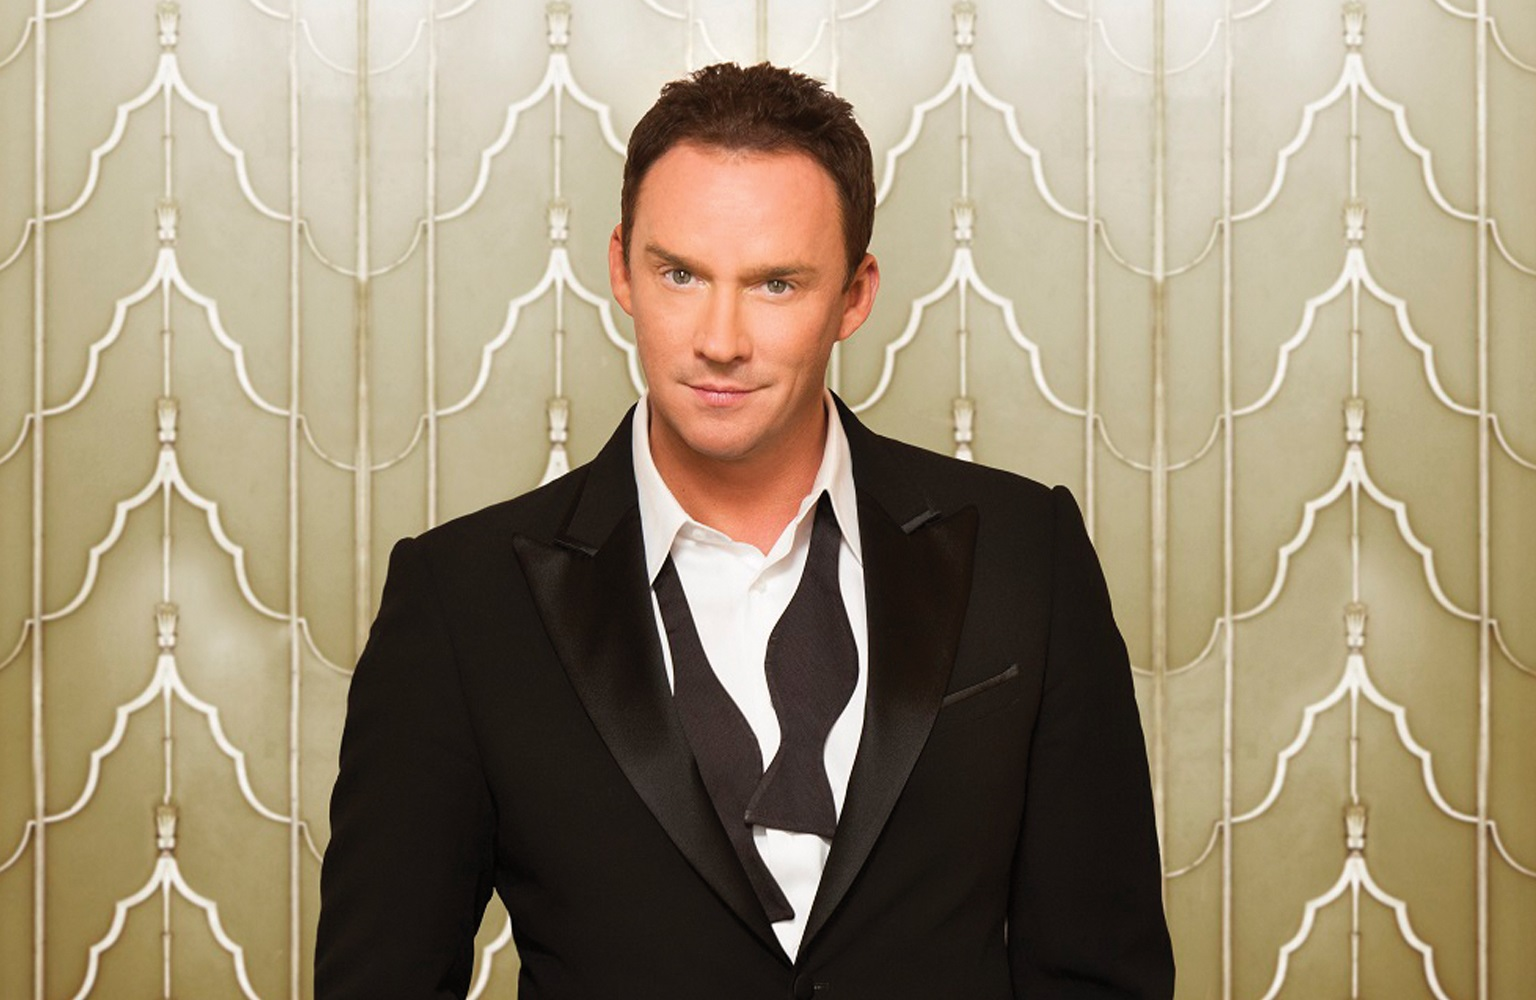 Russell Watson talks Nessun Dorma, playing tennis, turning 50, new albums and dream duets